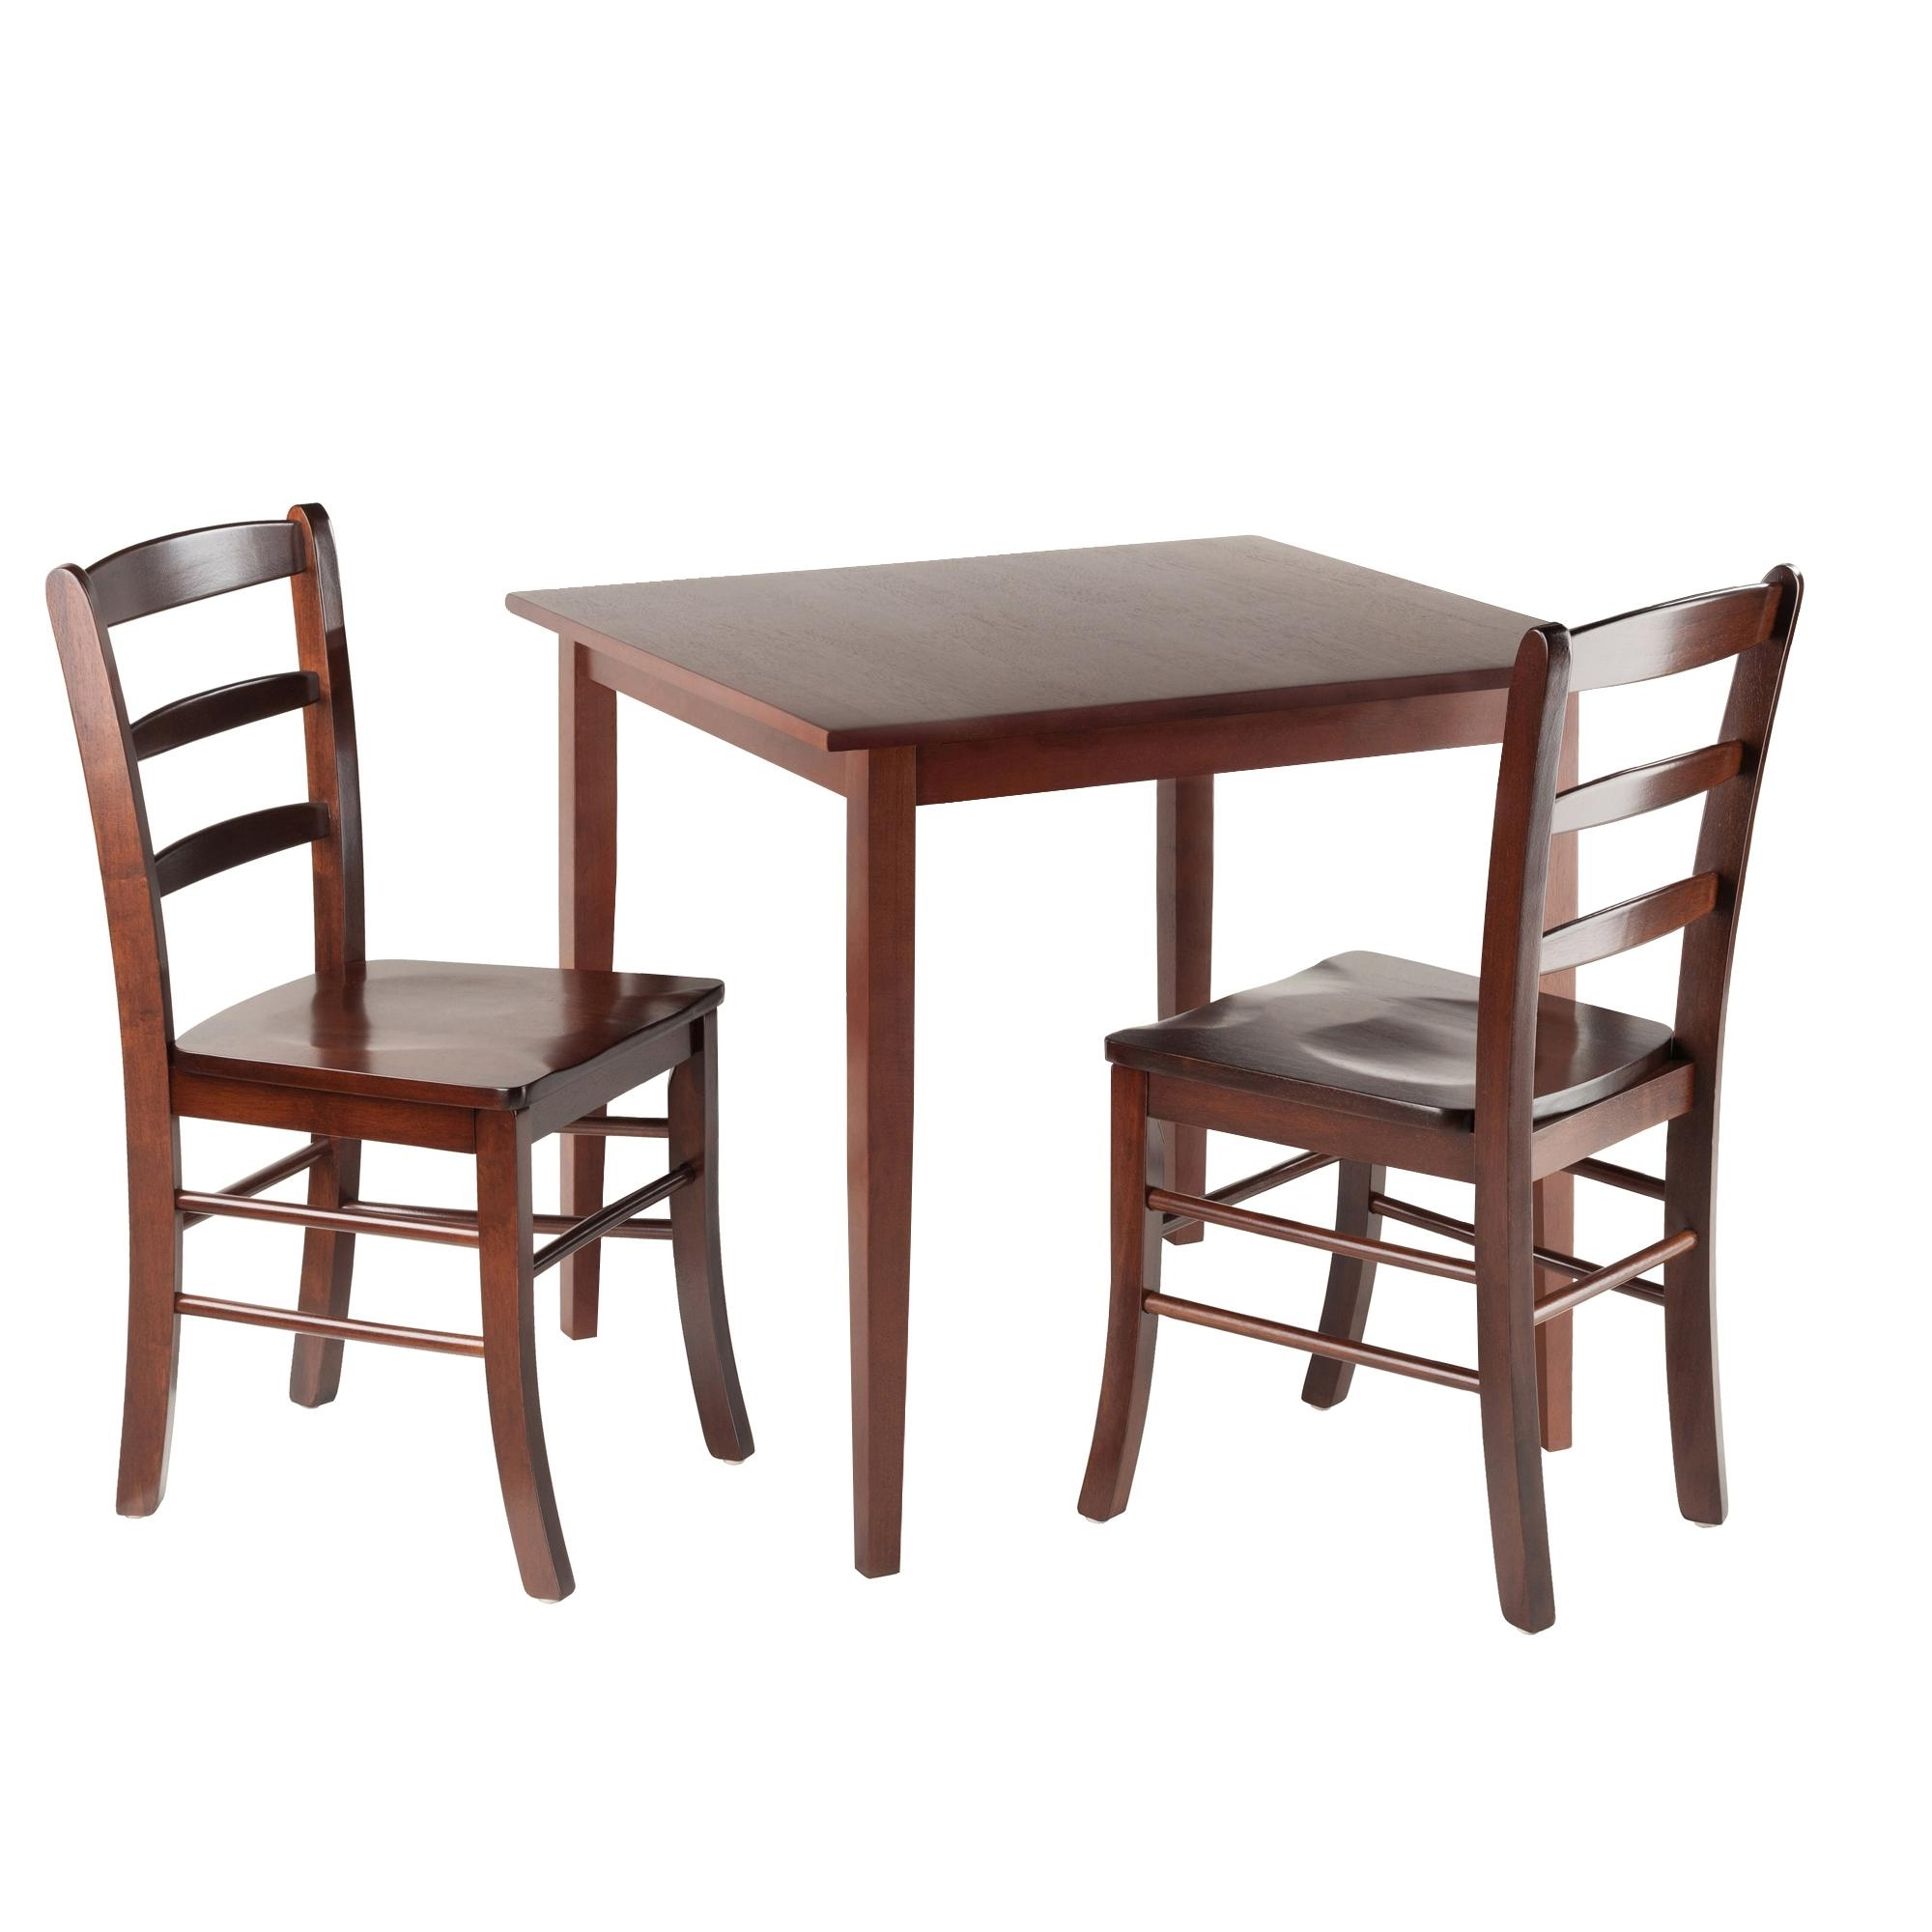 Kitchen Dining Sets For Famous Amazon – Winsome Groveland Square Dining Table With 2 Chairs,  (View 24 of 25)